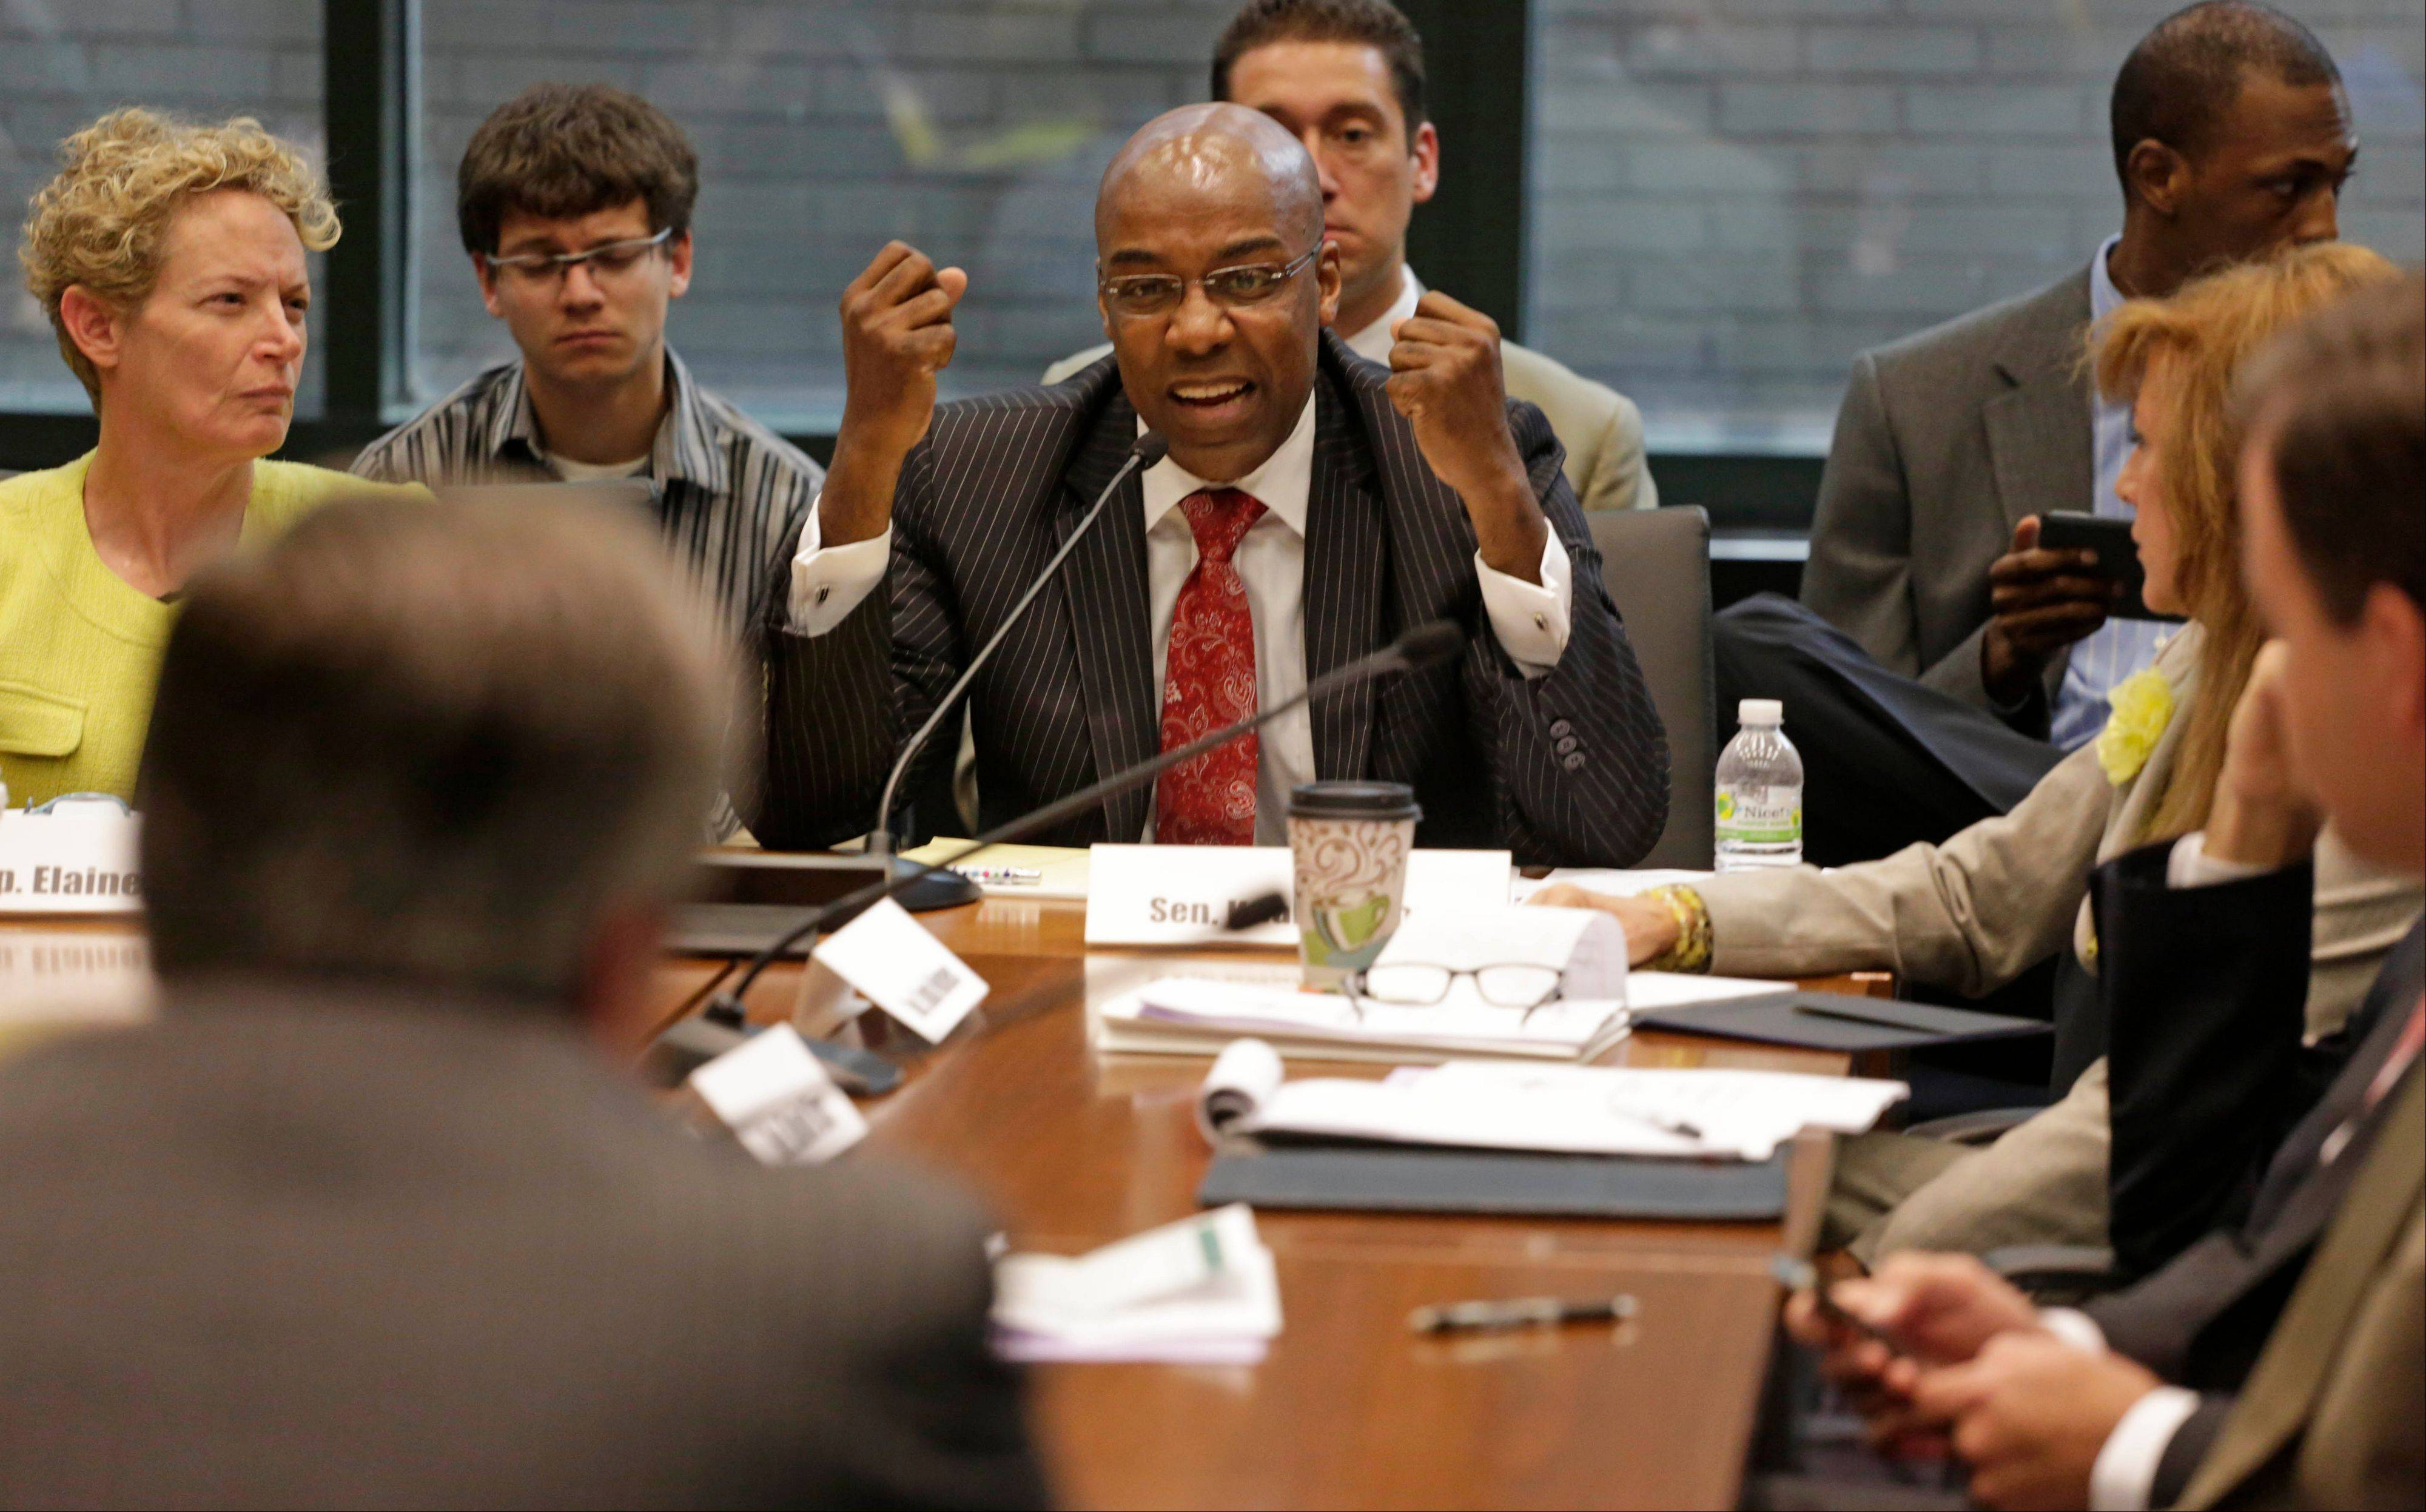 Pensions Conference Committee Chairman State Sen. Kwame Raoul, right and State Rep. Elaine Nekritz, left, join members of a bipartisan committee of Illinois lawmakers in questioning Ty Fahner, head of the Civic Committee of the Commercial Club of Chicago, during its first public pension hearing Thursday.